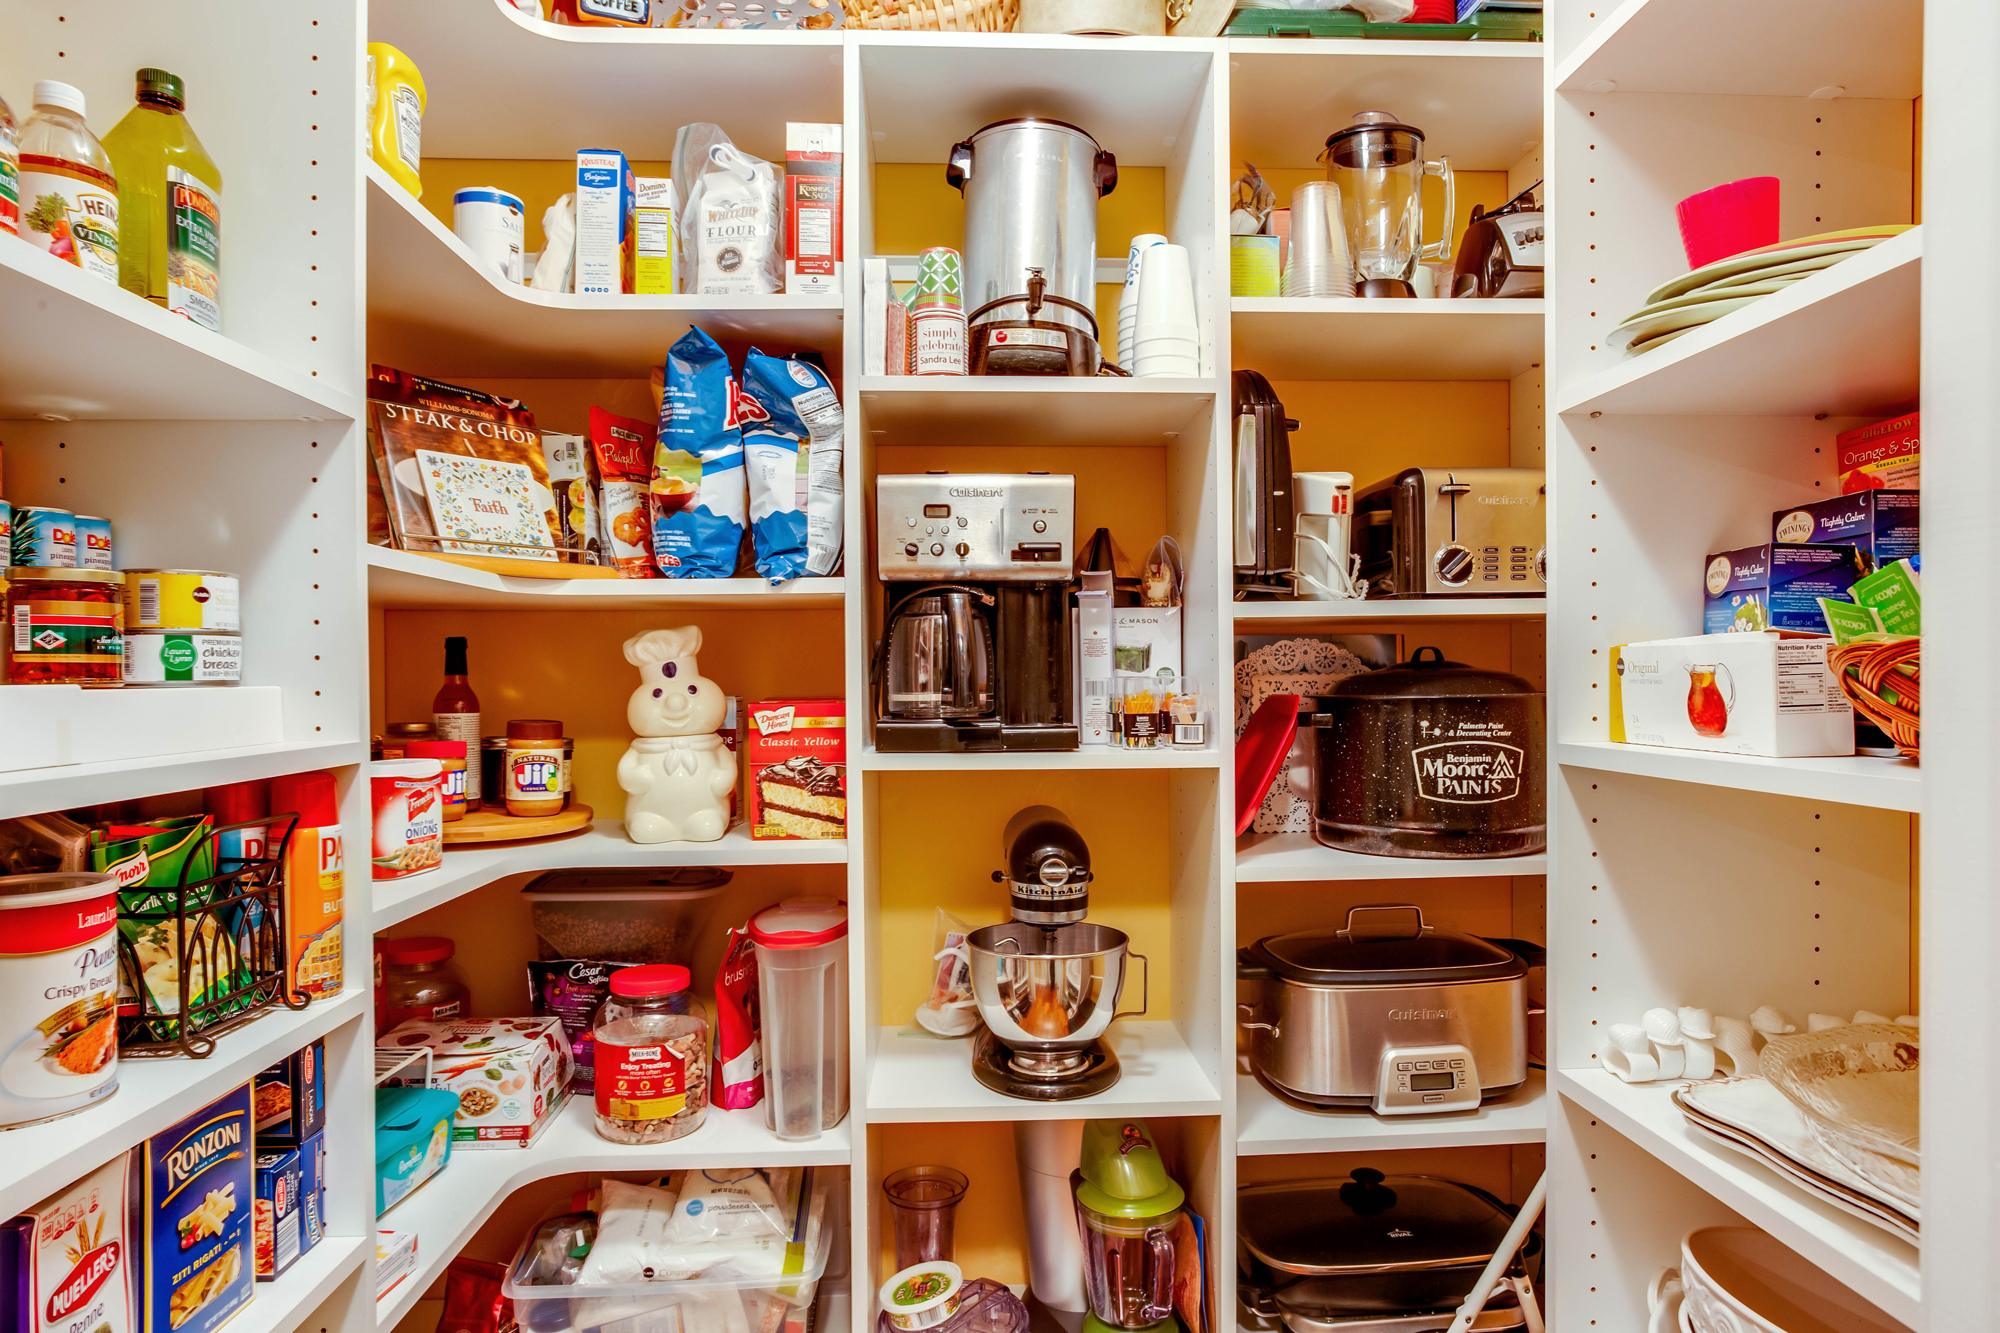 Pantry with boxed food ingredients